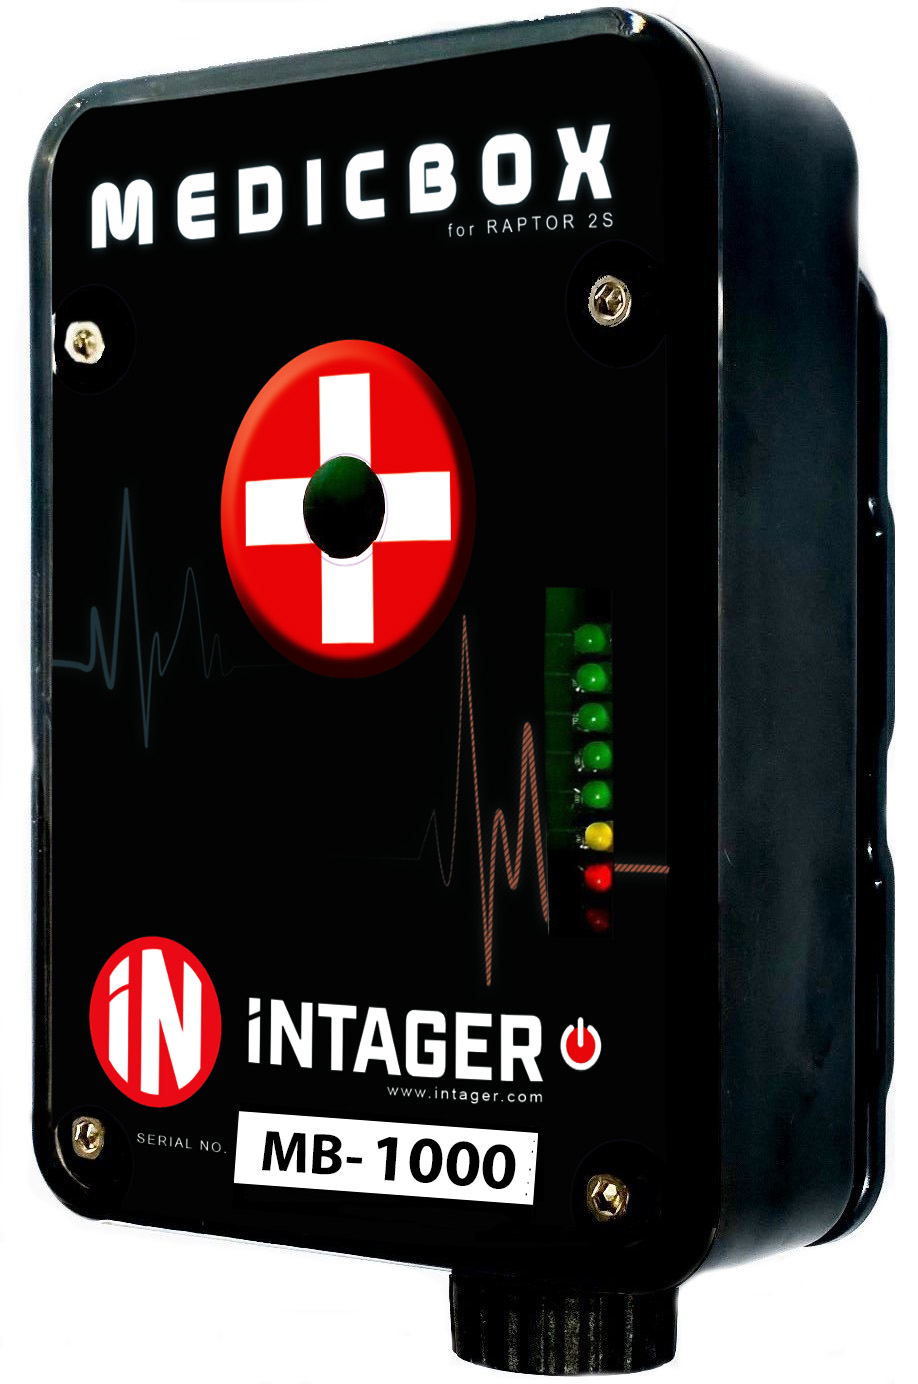 Intager Medic box for an easier laser tag game